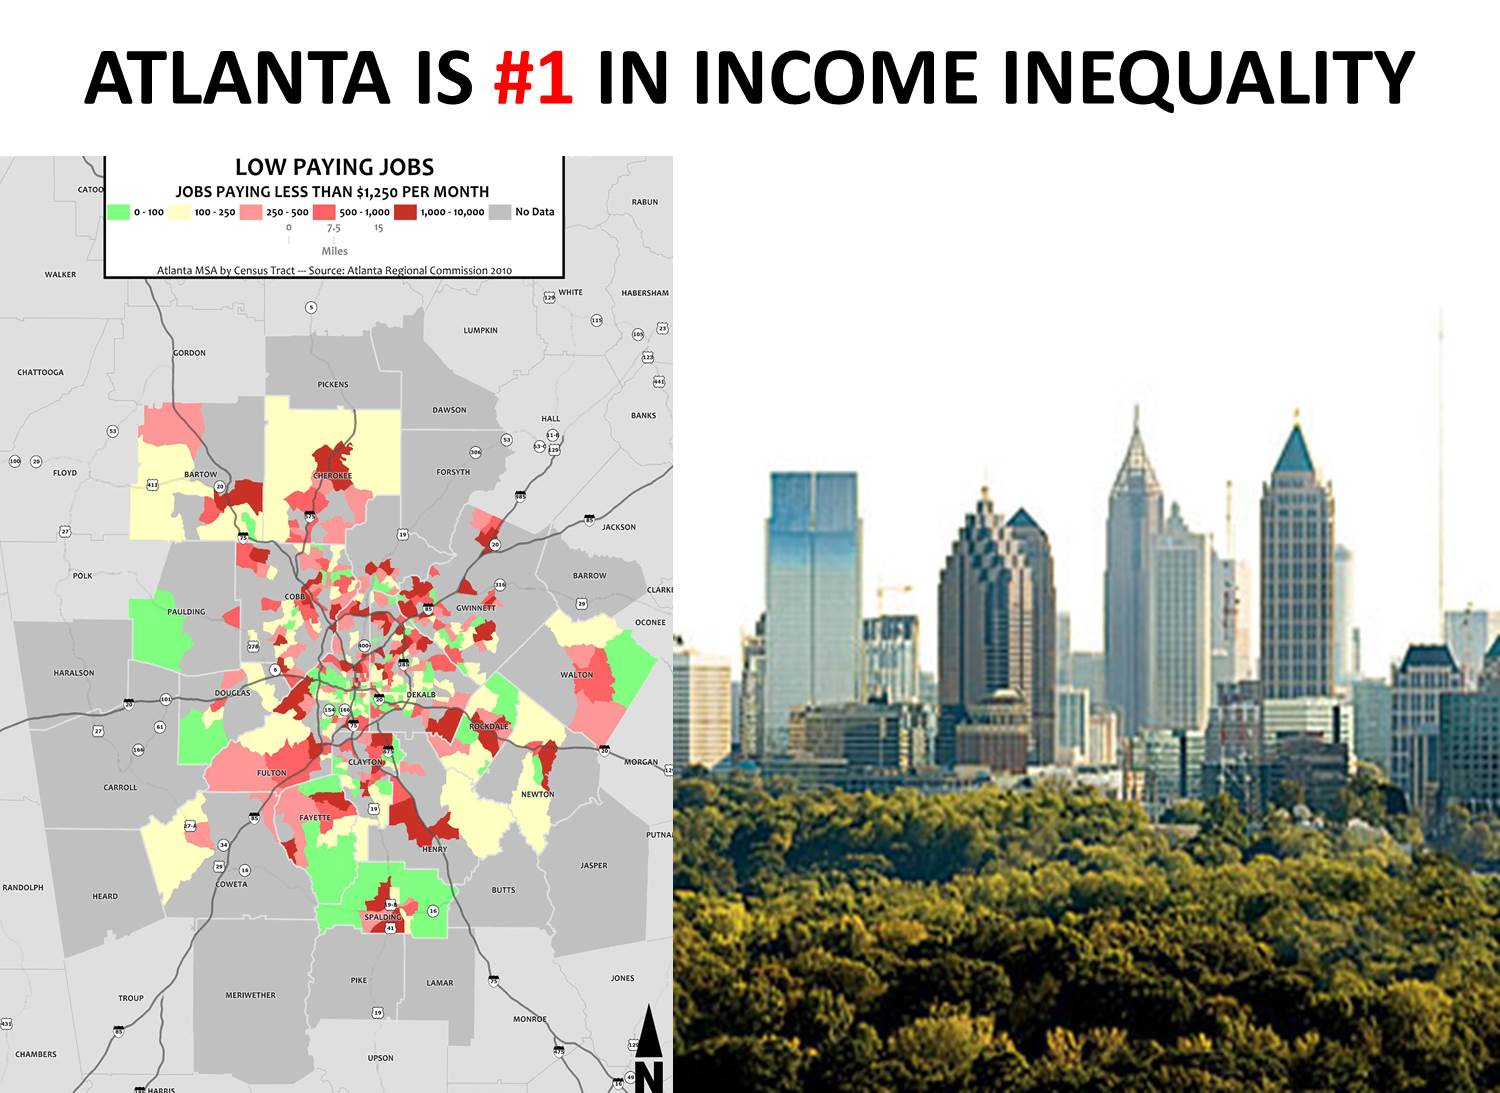 @Cl_ATL Op-Ed: Everyone's To Blame for Income Inequality